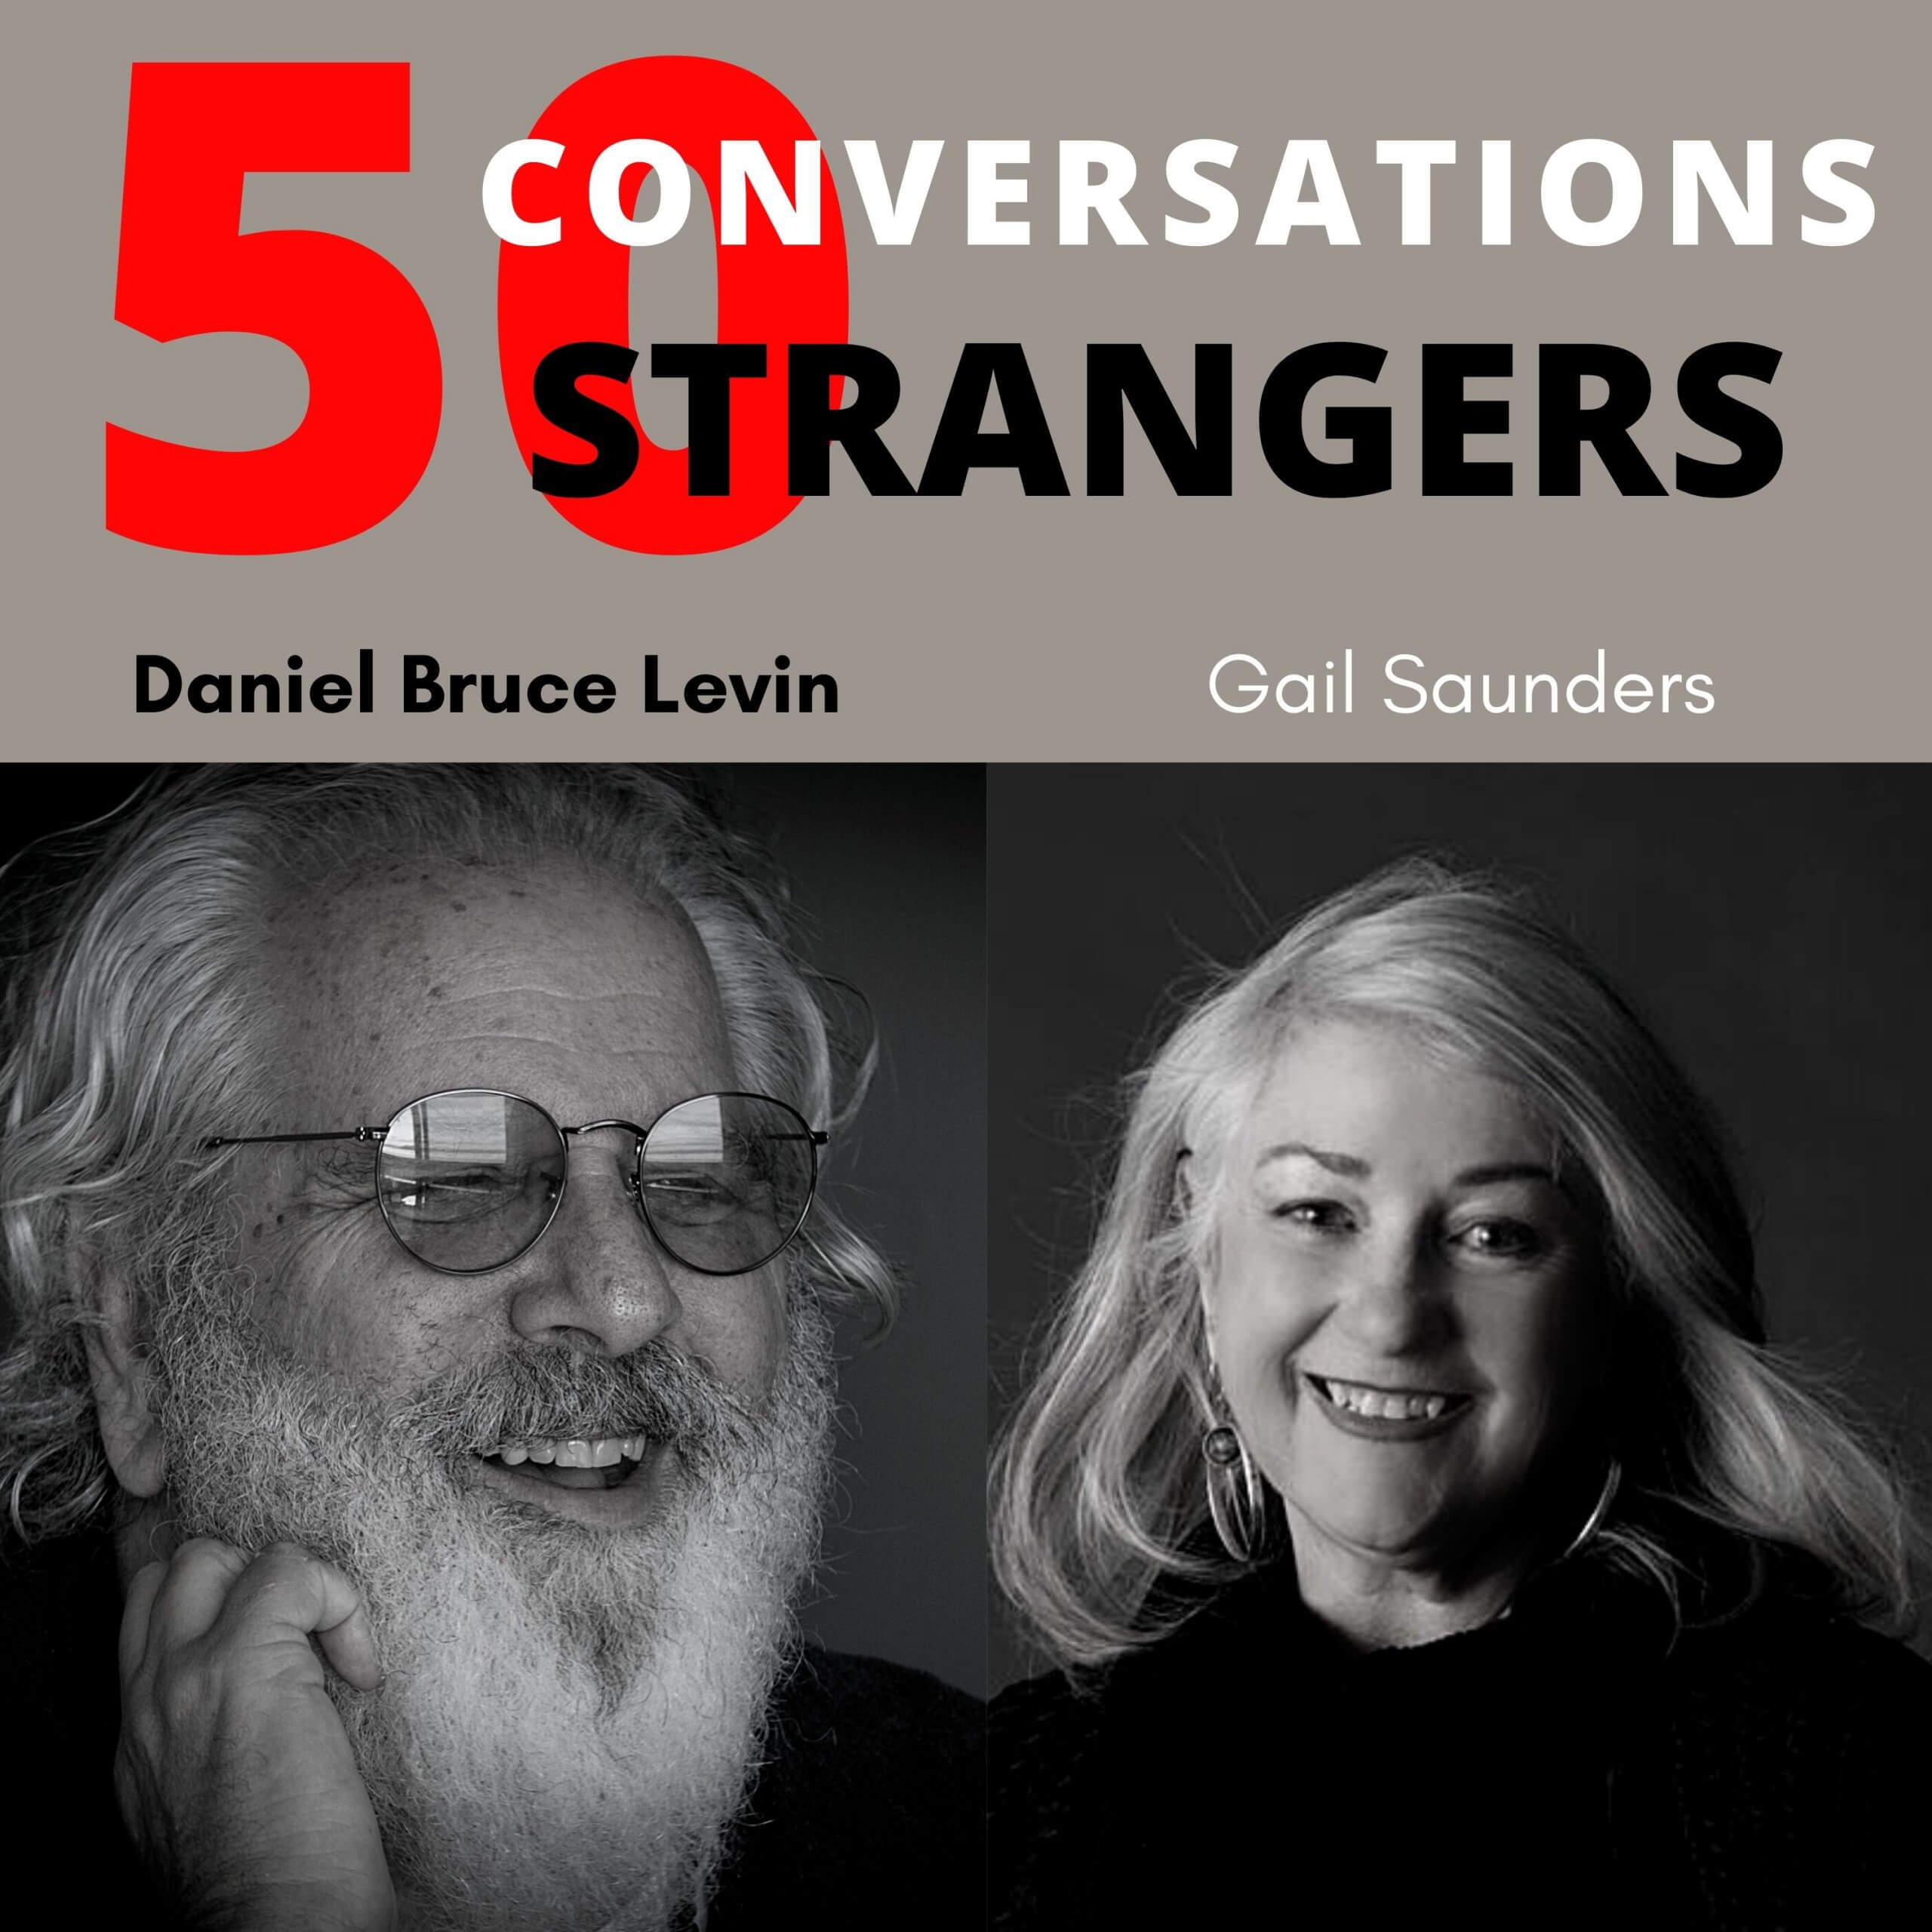 50 Conversations with 50 Strangers with Gail Saunders